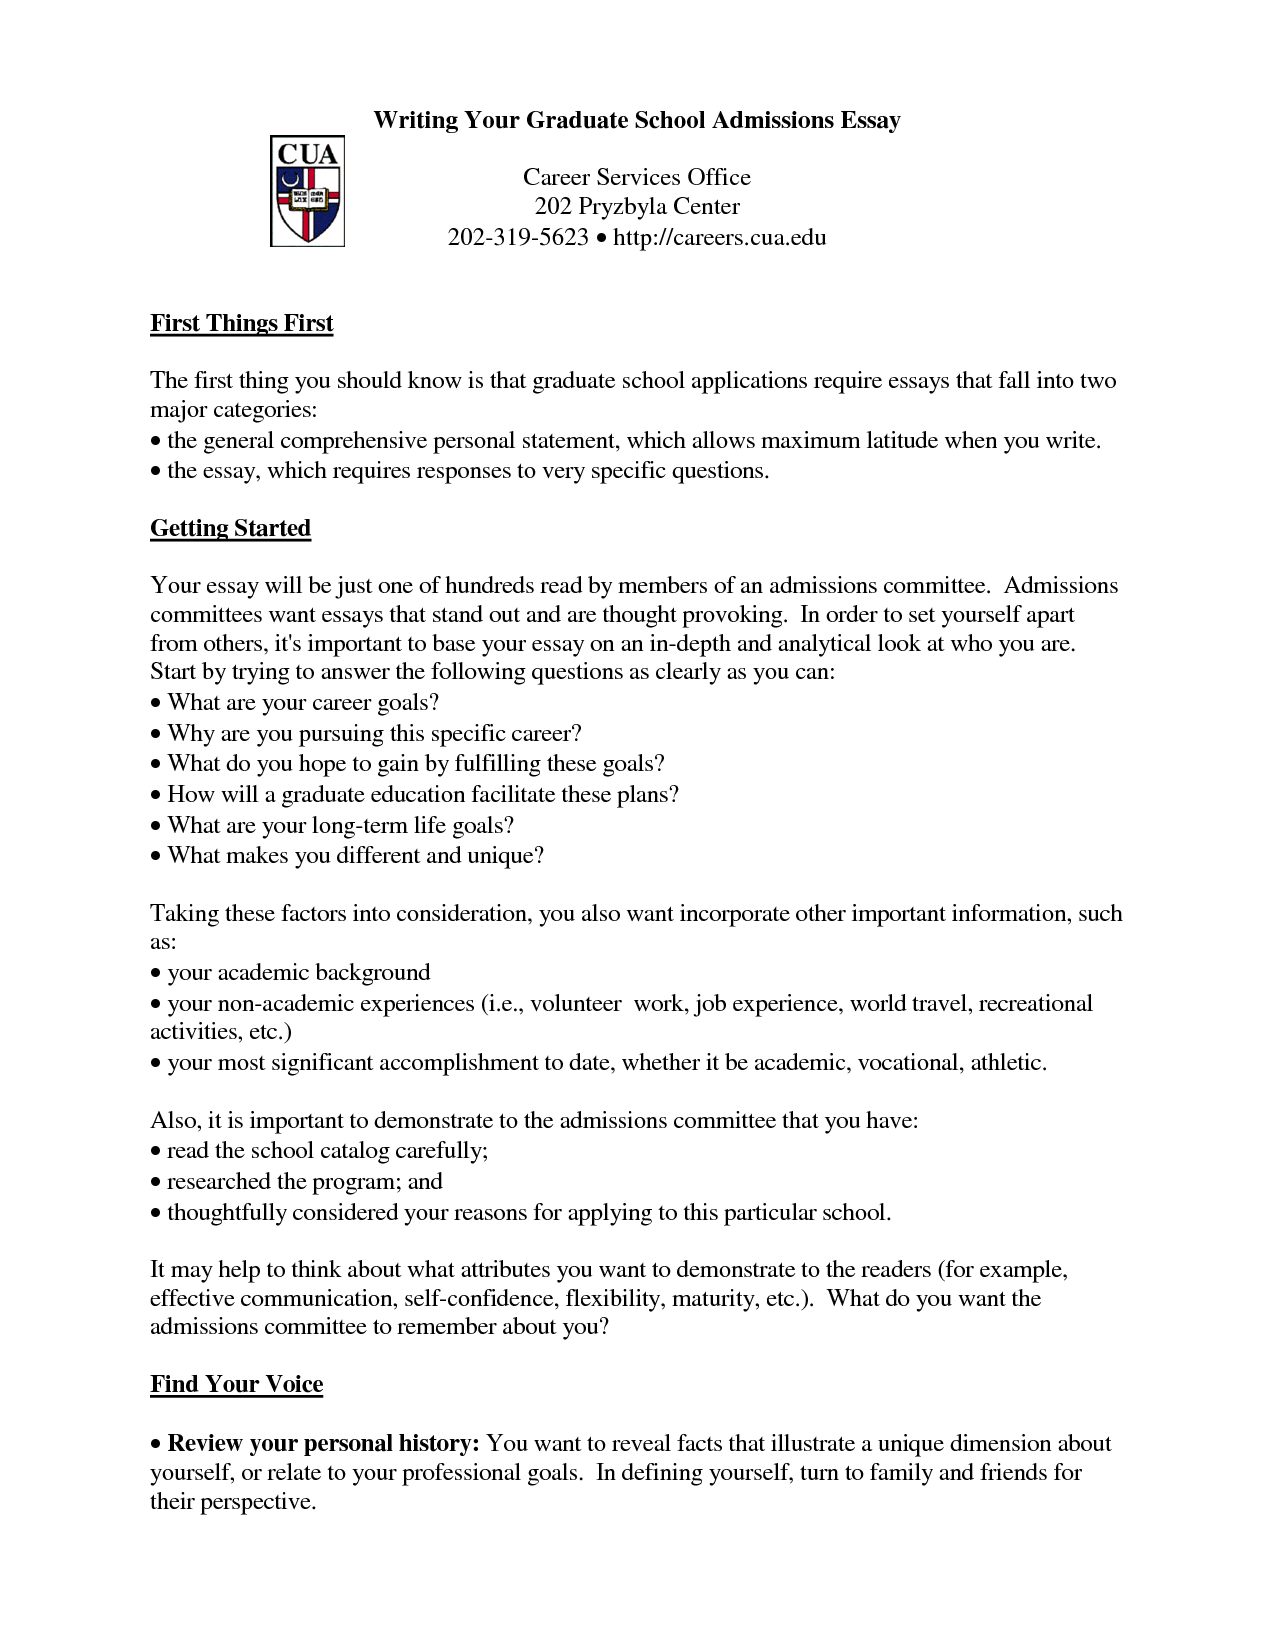 Personal Statement Sample Essays For Cover Letter Prompt Essay Personal  Statement Sample Essays For Graduate Admissions. Resume Format For Graduate  School ...